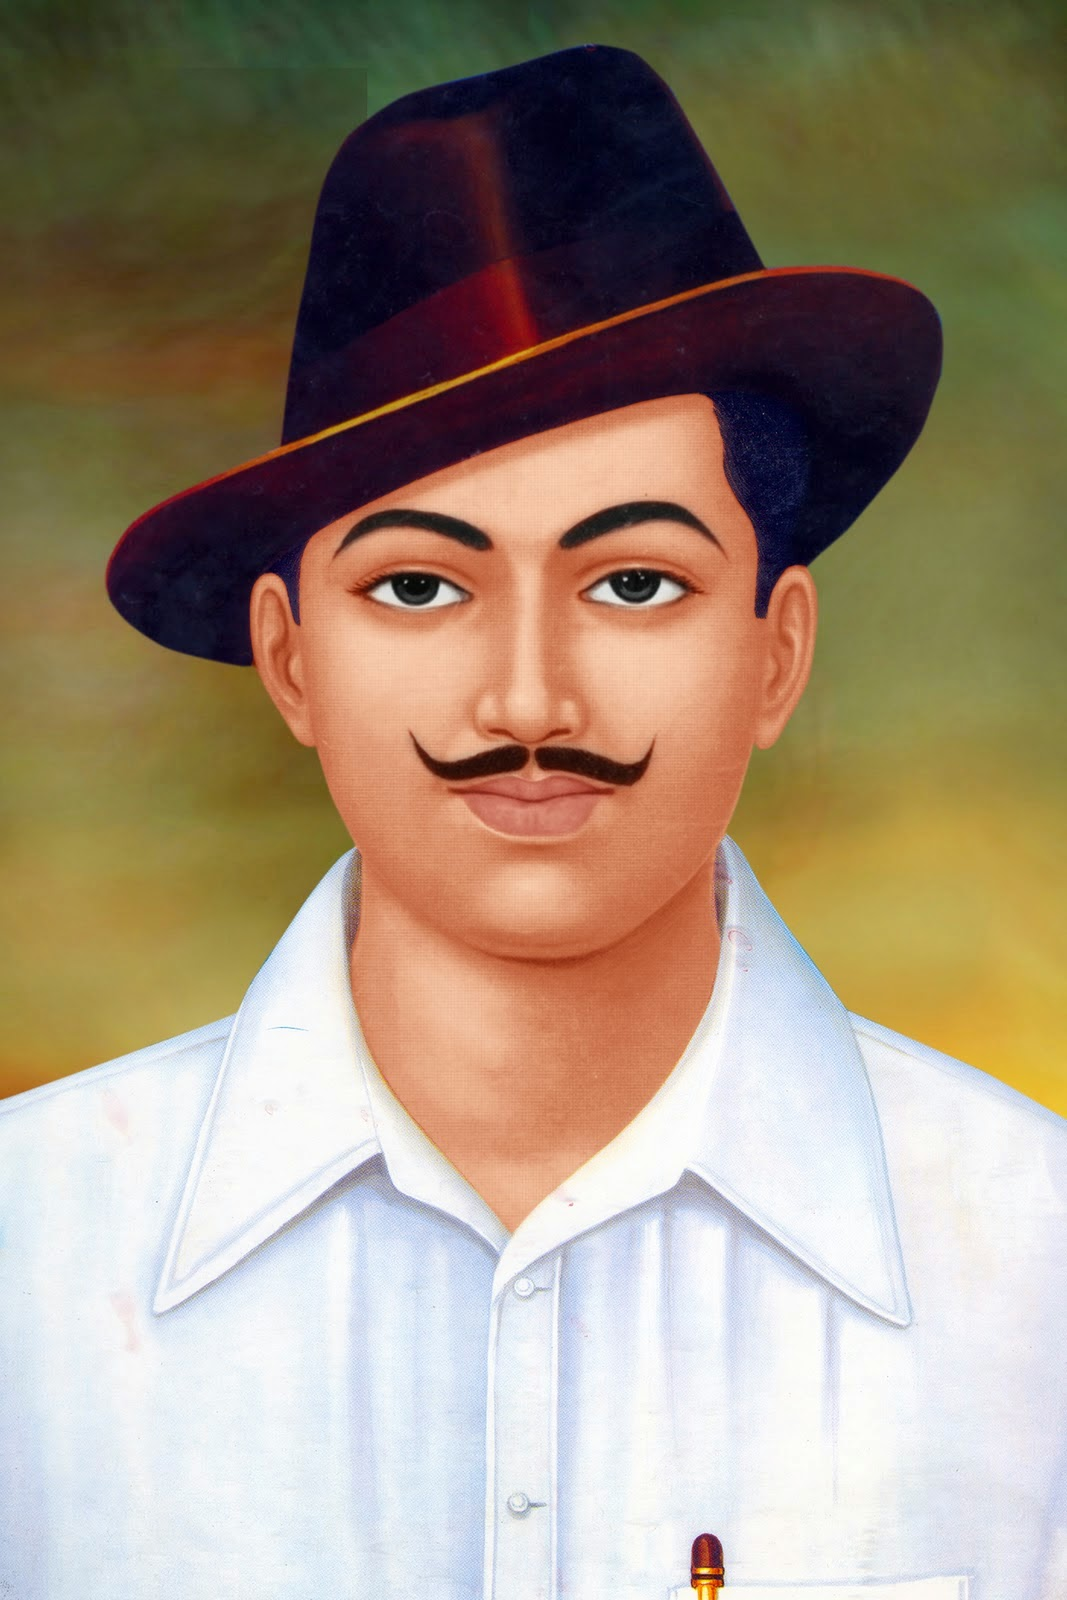 bhagat singh essay an essay on bhagat singh for students kids and school project works a short eassy about bhagat singh images a short eassy about bhagat